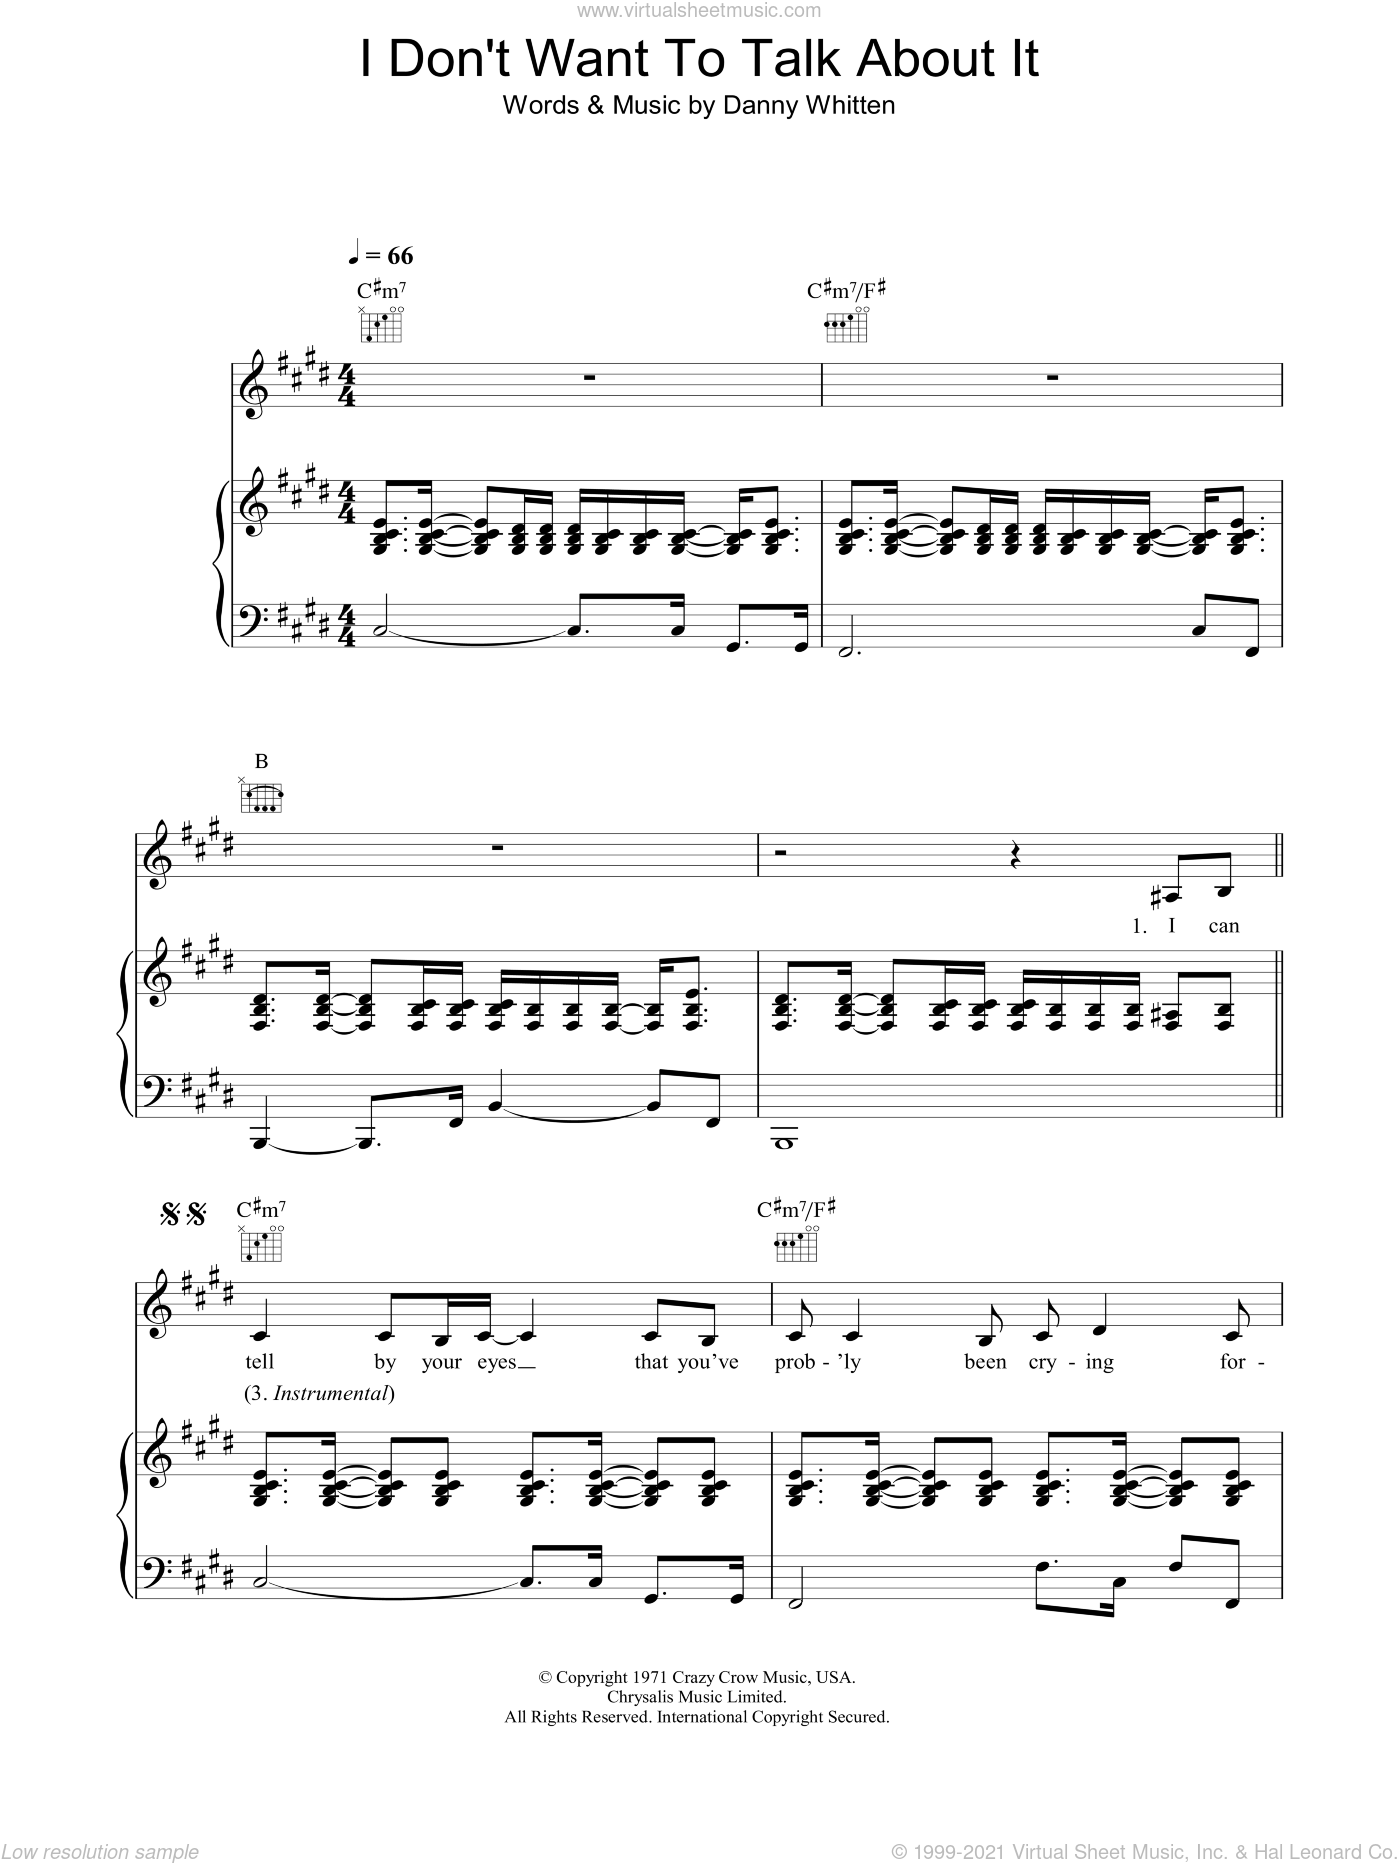 I Don't Want To Talk About It sheet music for voice, piano or guitar by Danny Whitten